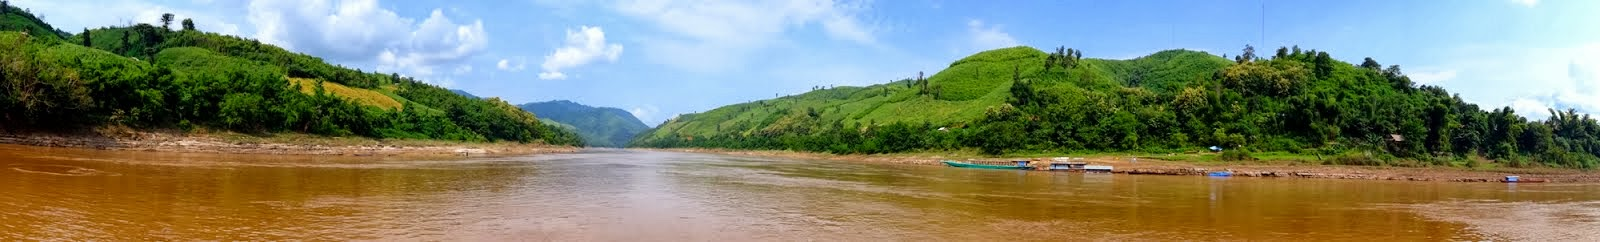 Mekong River, Laos...